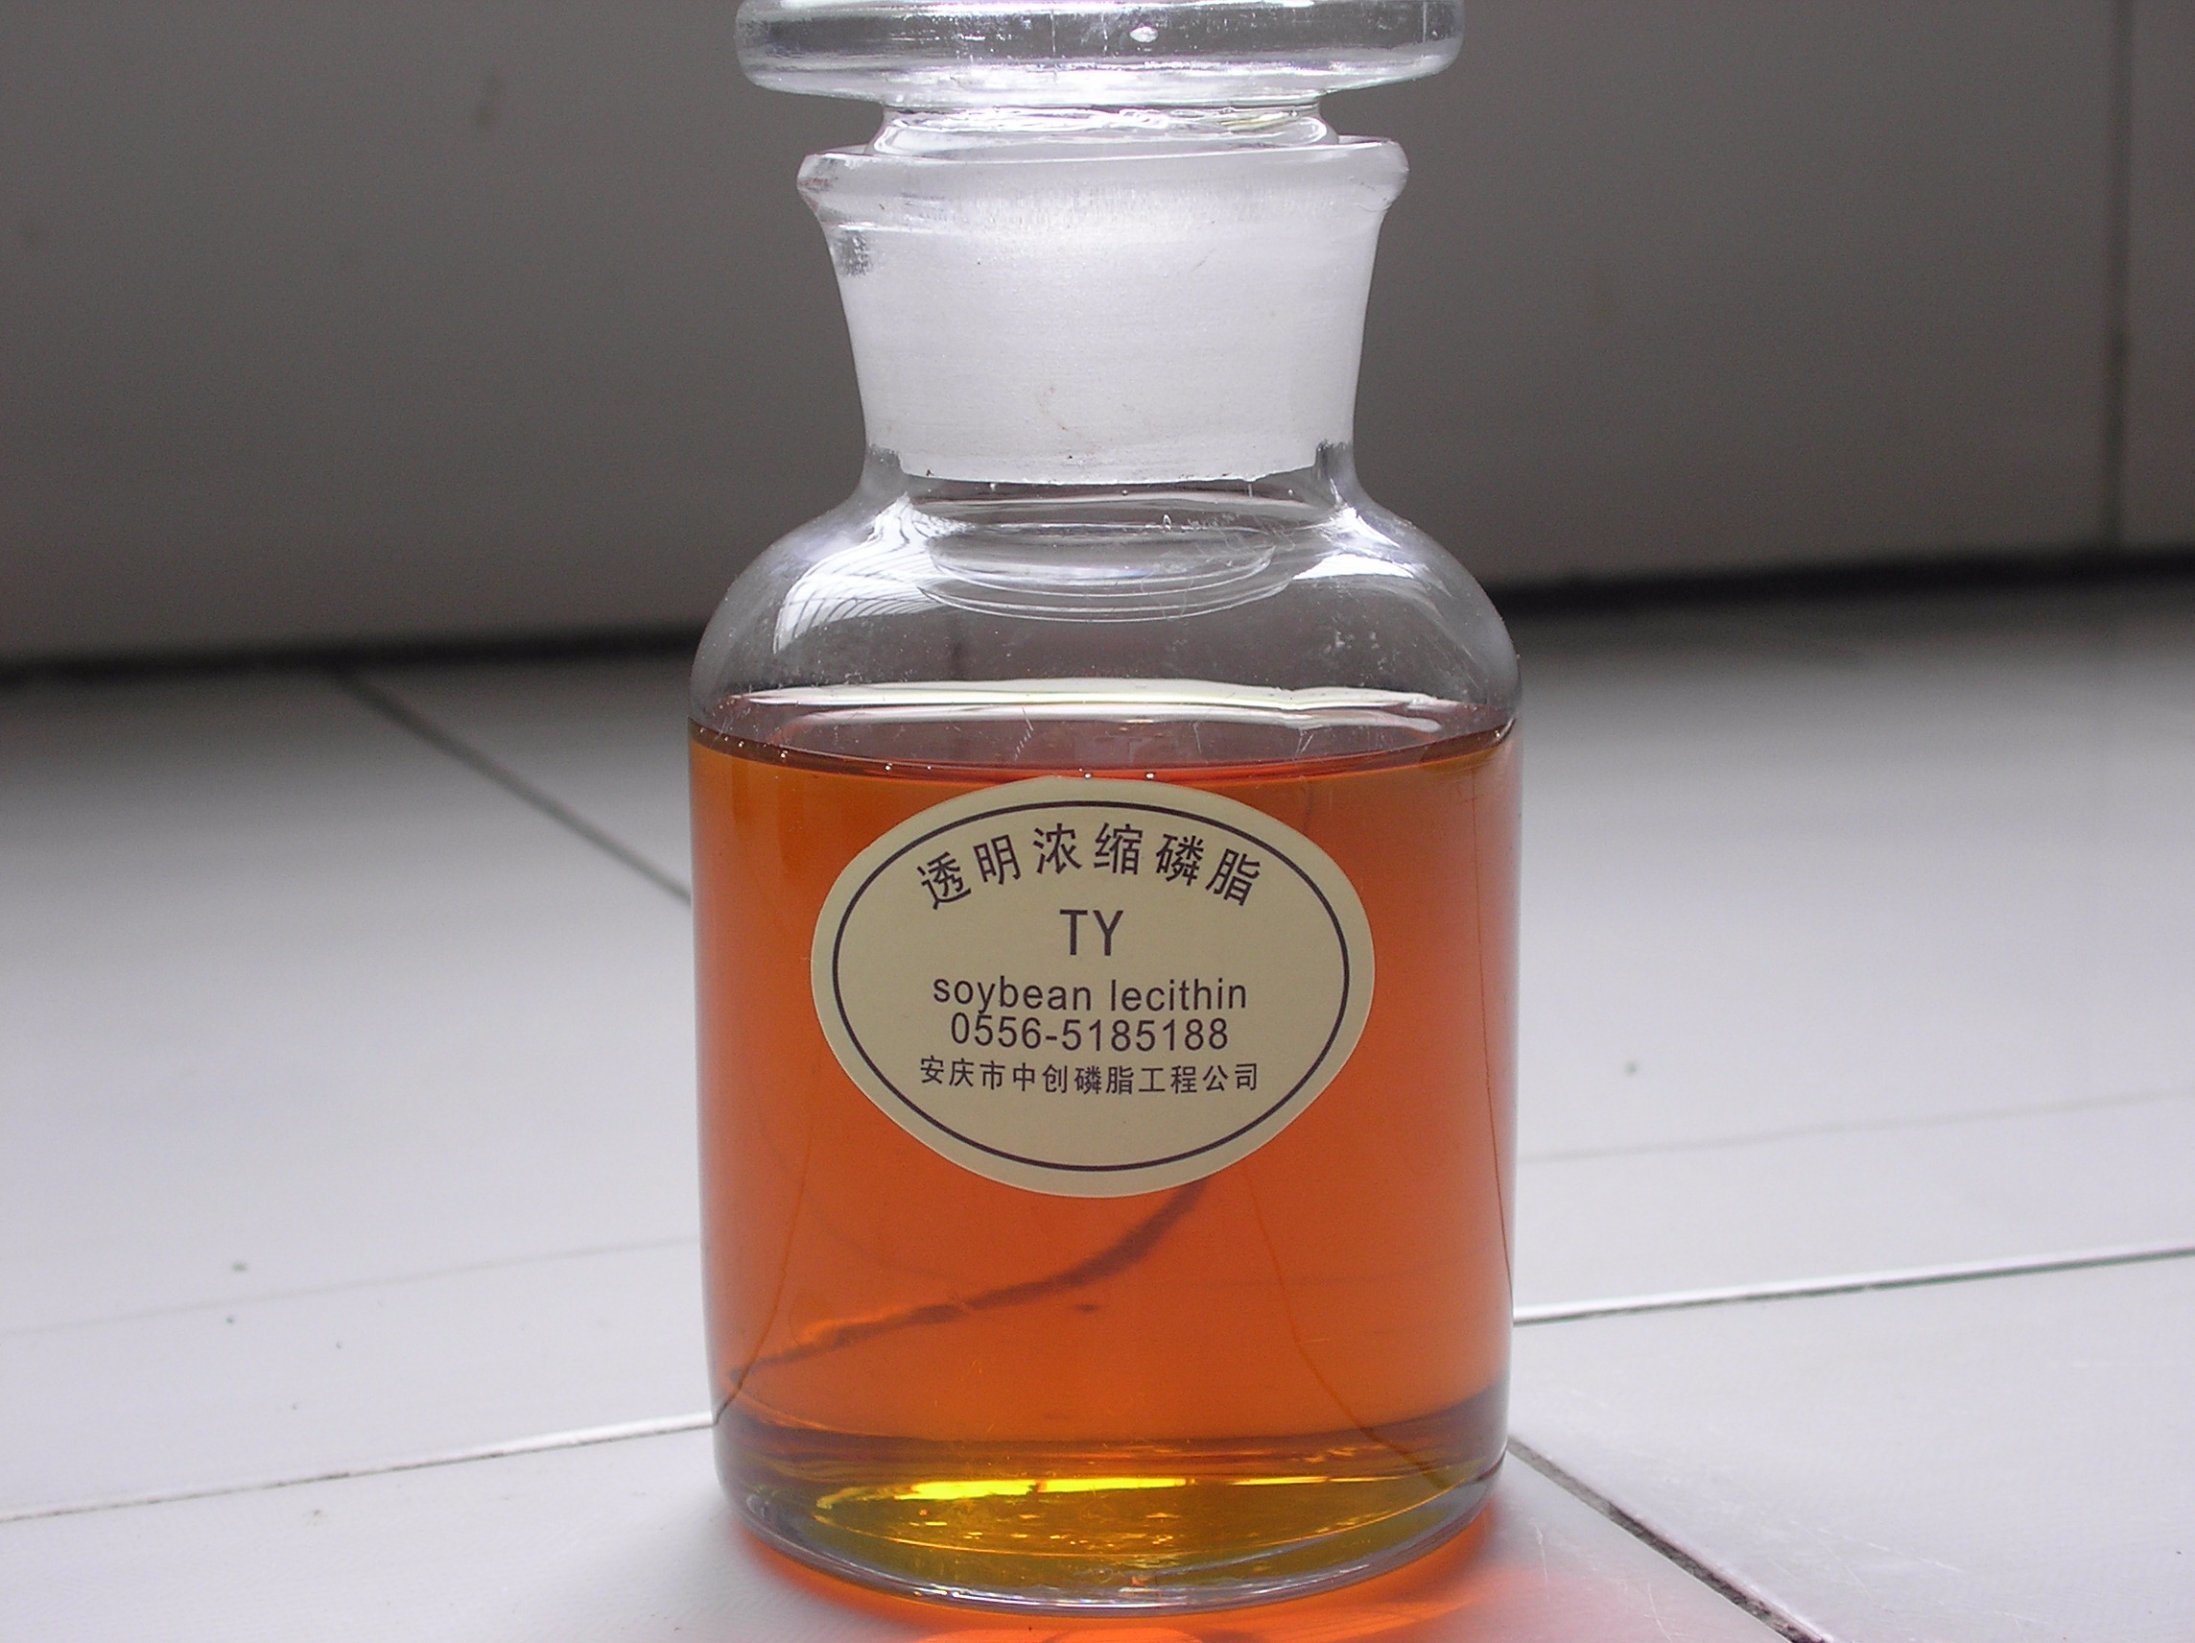 Transparent Soy Lecithin Liquid (PCR NOT DETECTED)